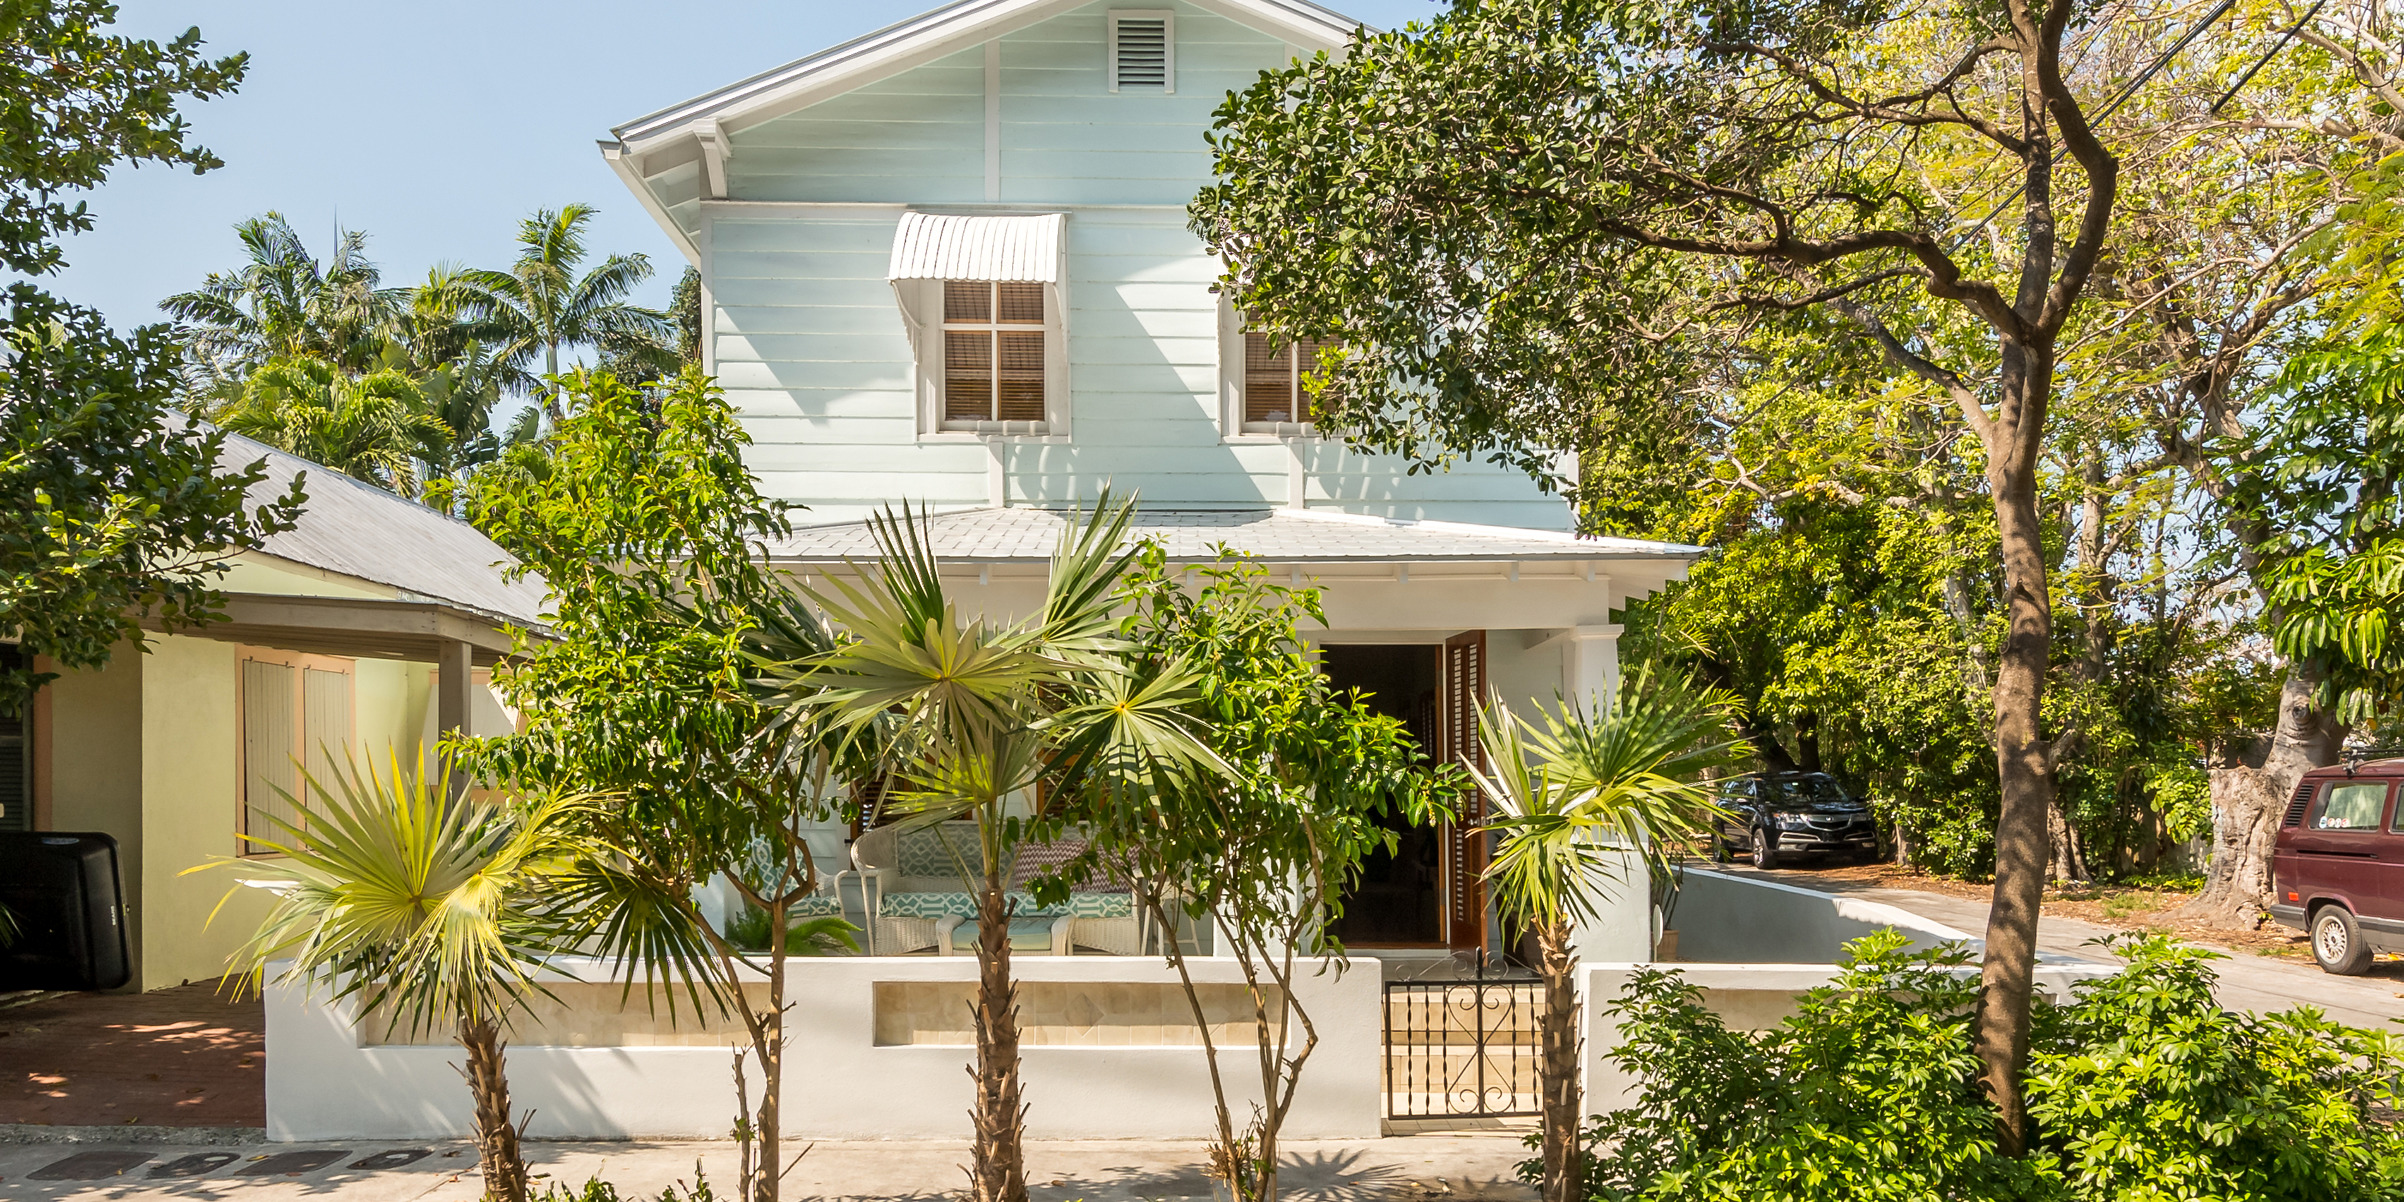 garden house bed breakfast key west fl best 2017 - Garden House Key West